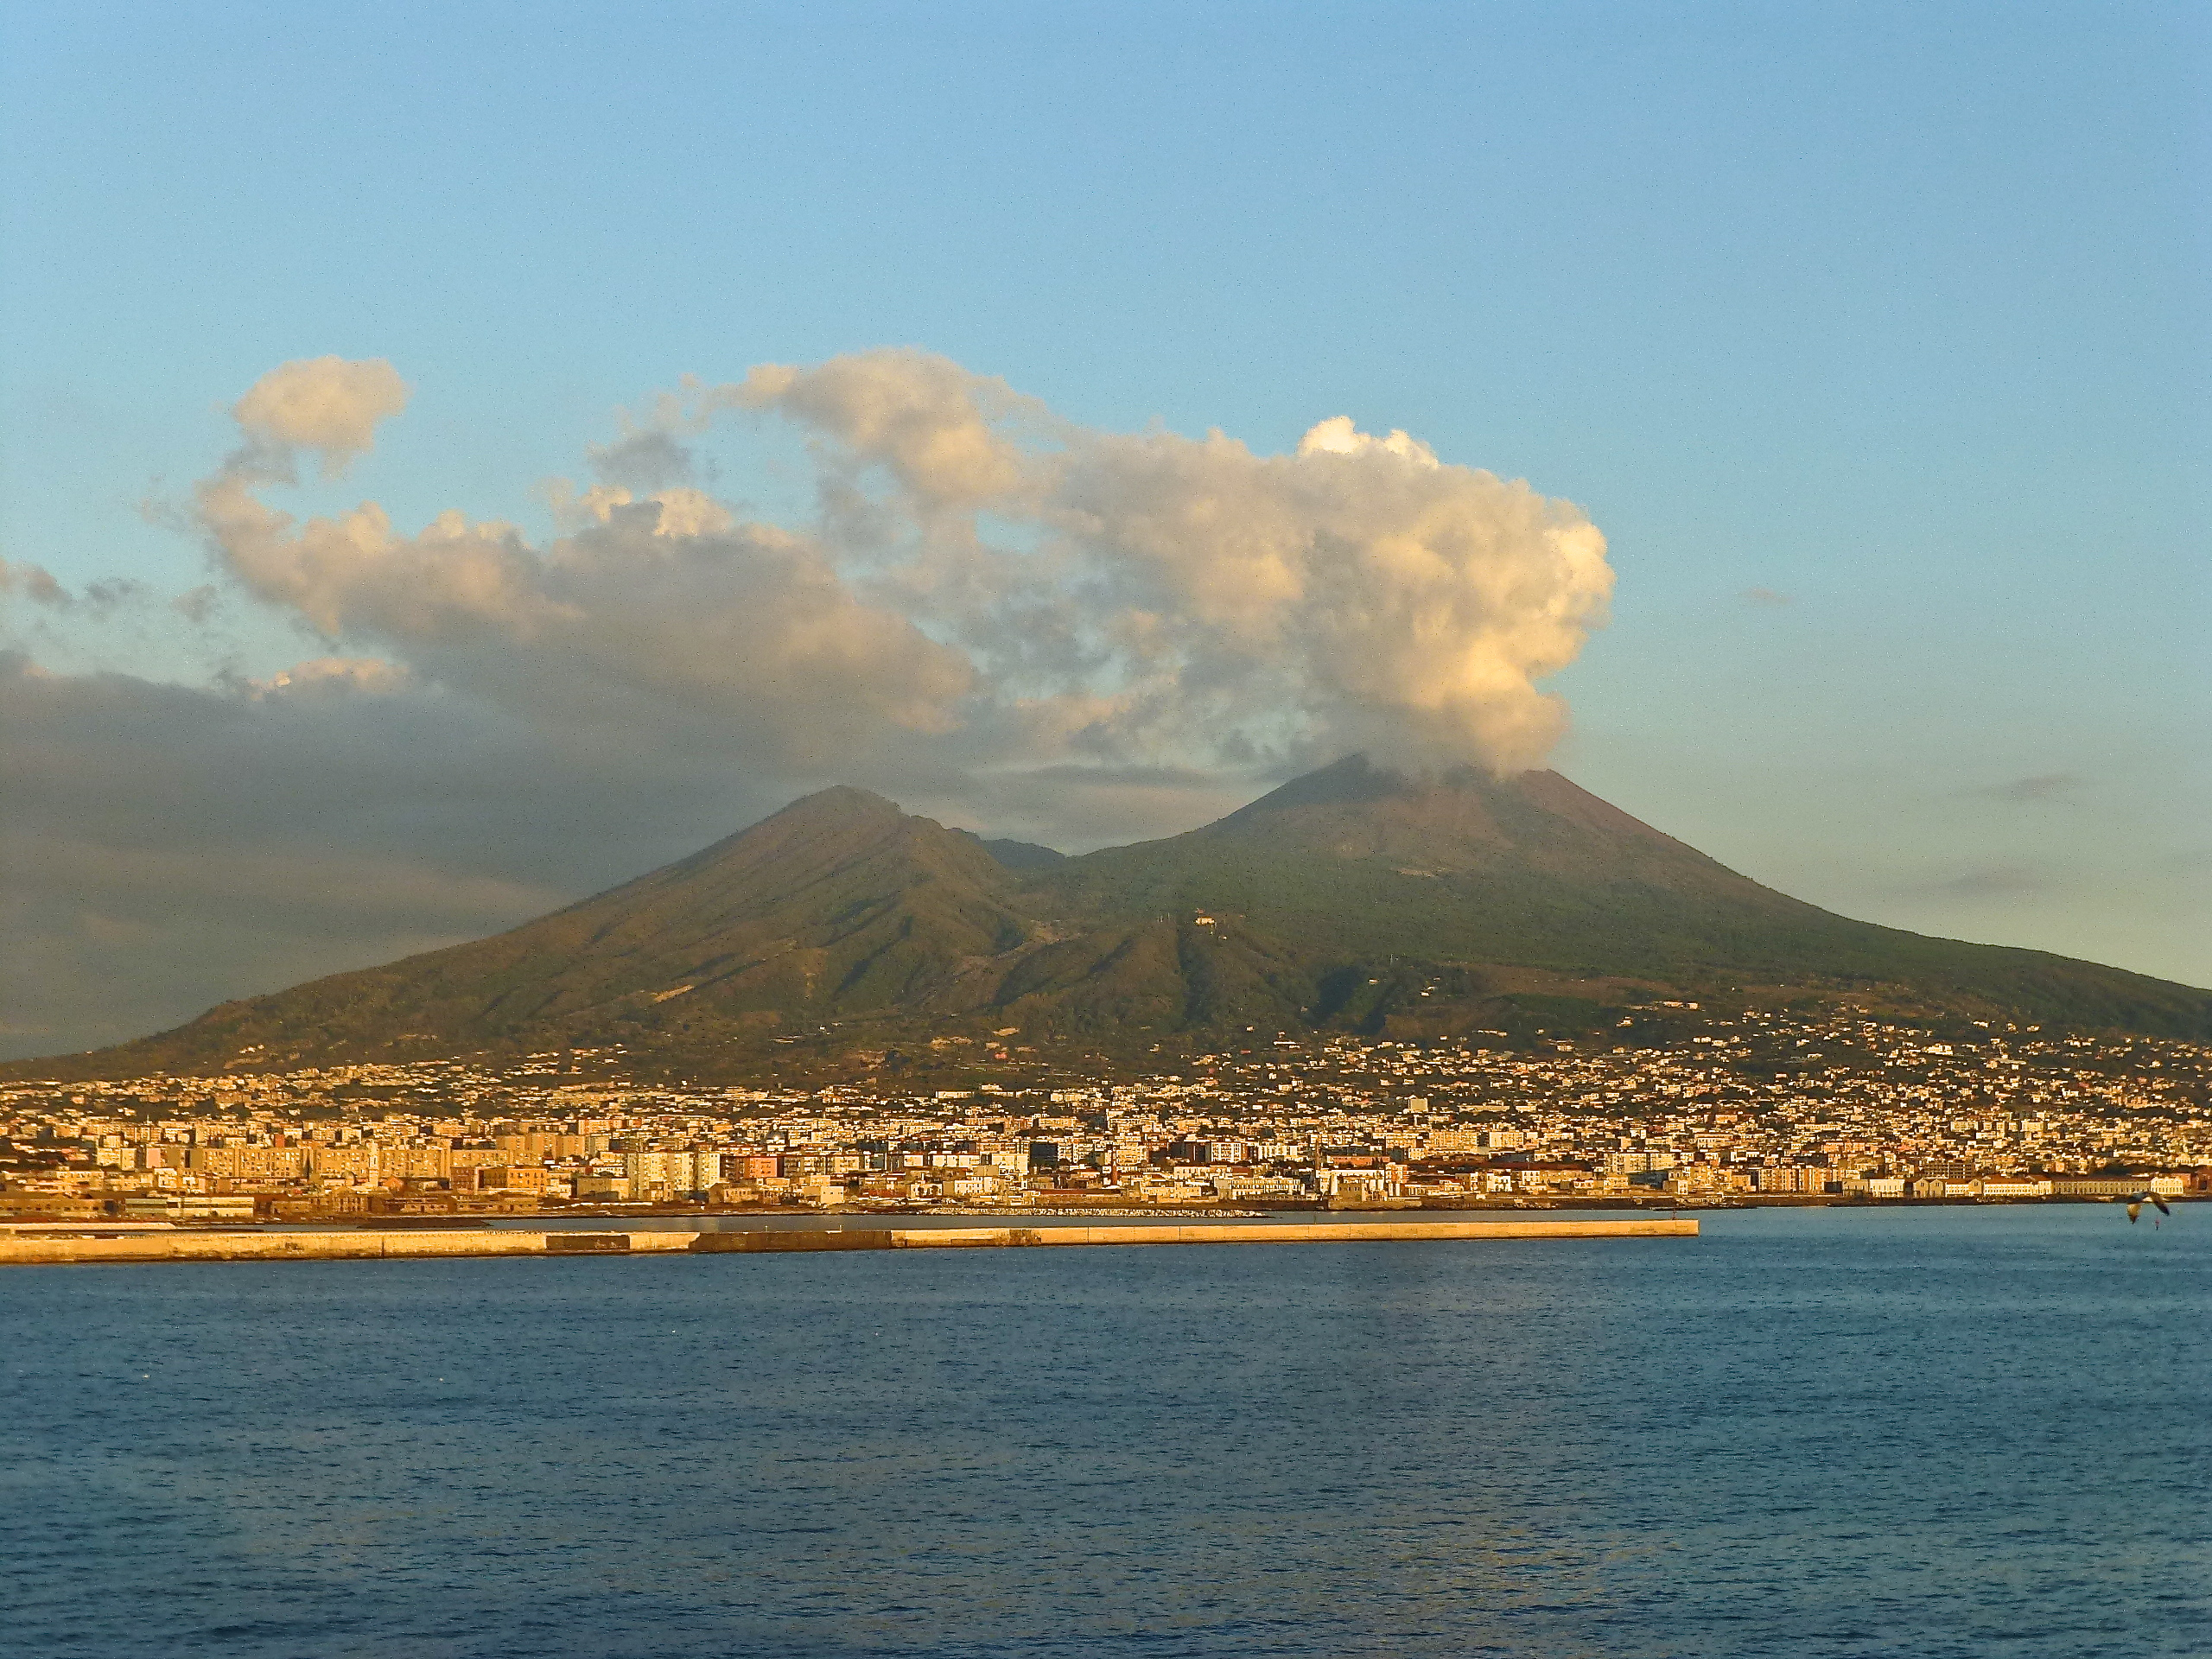 mt vesuvius Mount vesuvius, the volcano famous for the 79 ad eruption that destroyed the roman cities of pompeii and herculaneum, today is part of a protected area, the vesuvius national park (parco nazionale del vesuvio.